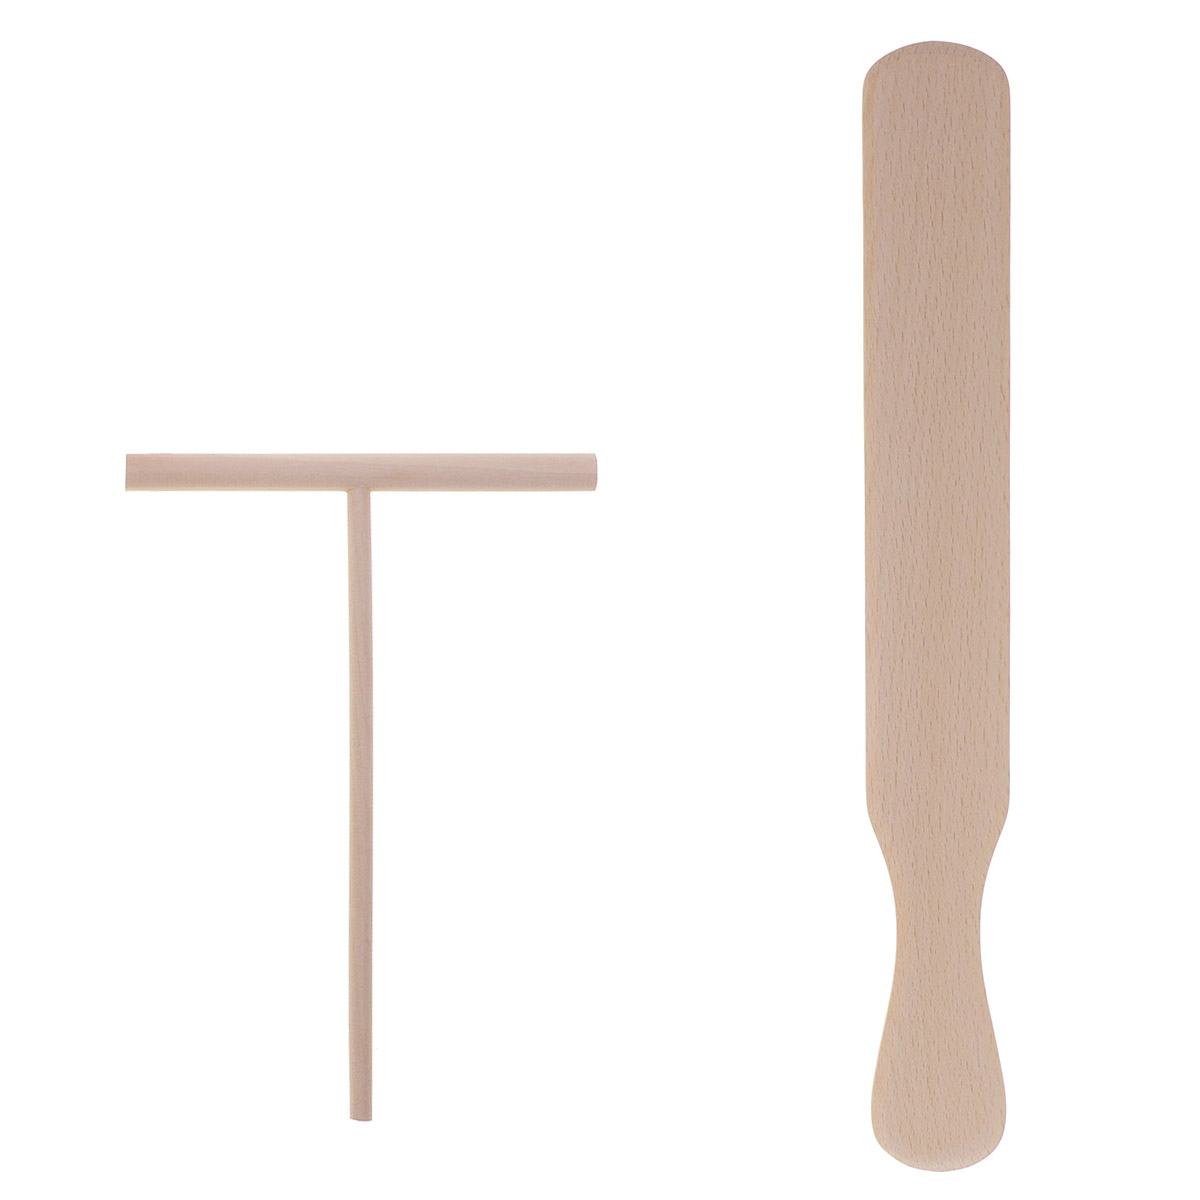 2pcs Pancake Cooking Pie Tool Chinese Wooden Crepe Maker Spreader And Spatula Tortilla Rake Batter Spreading Stick image